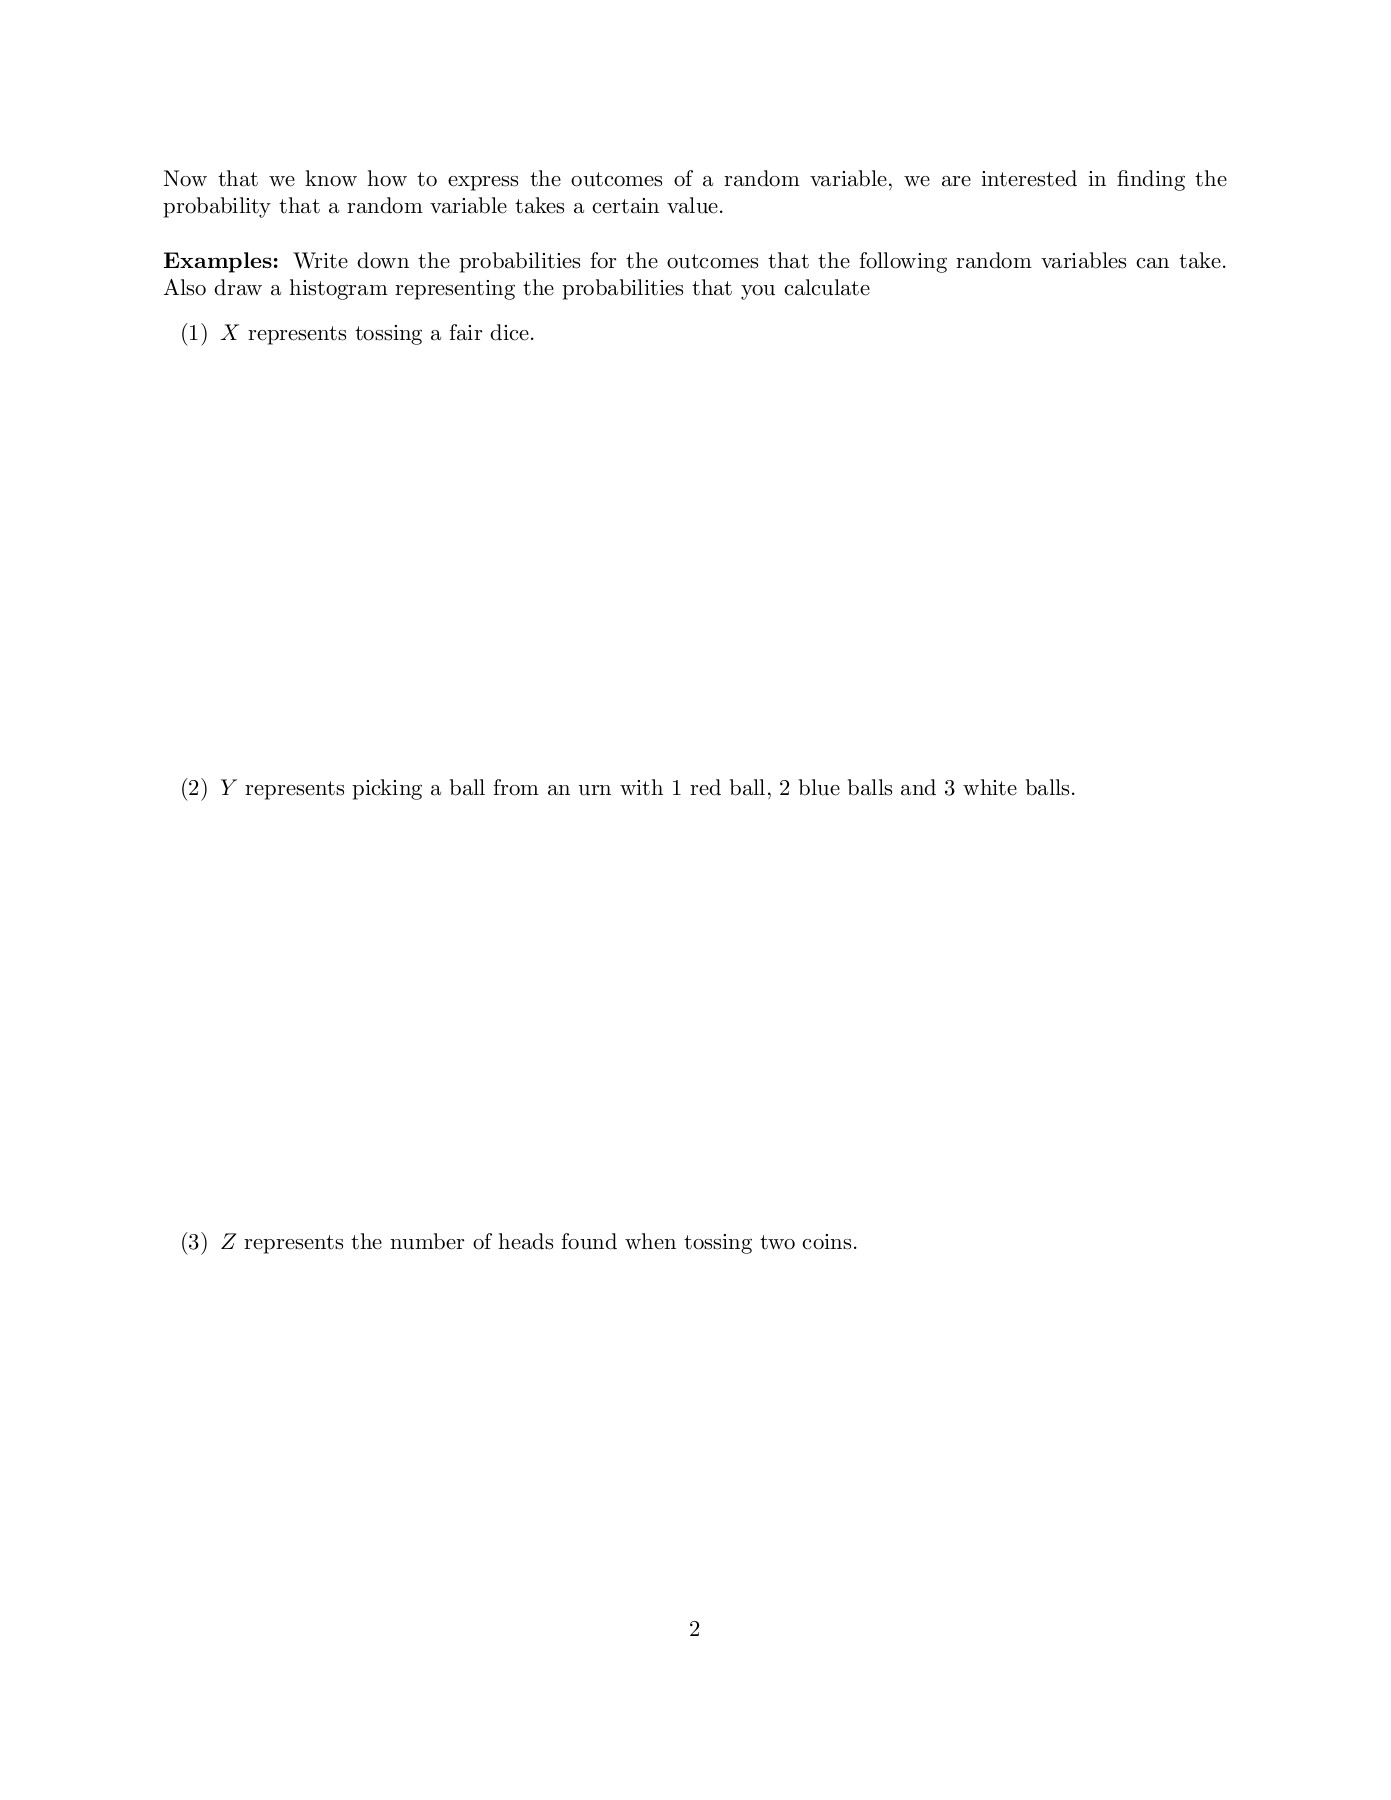 Probability Distributions and Expected Values Pages 1 - 8